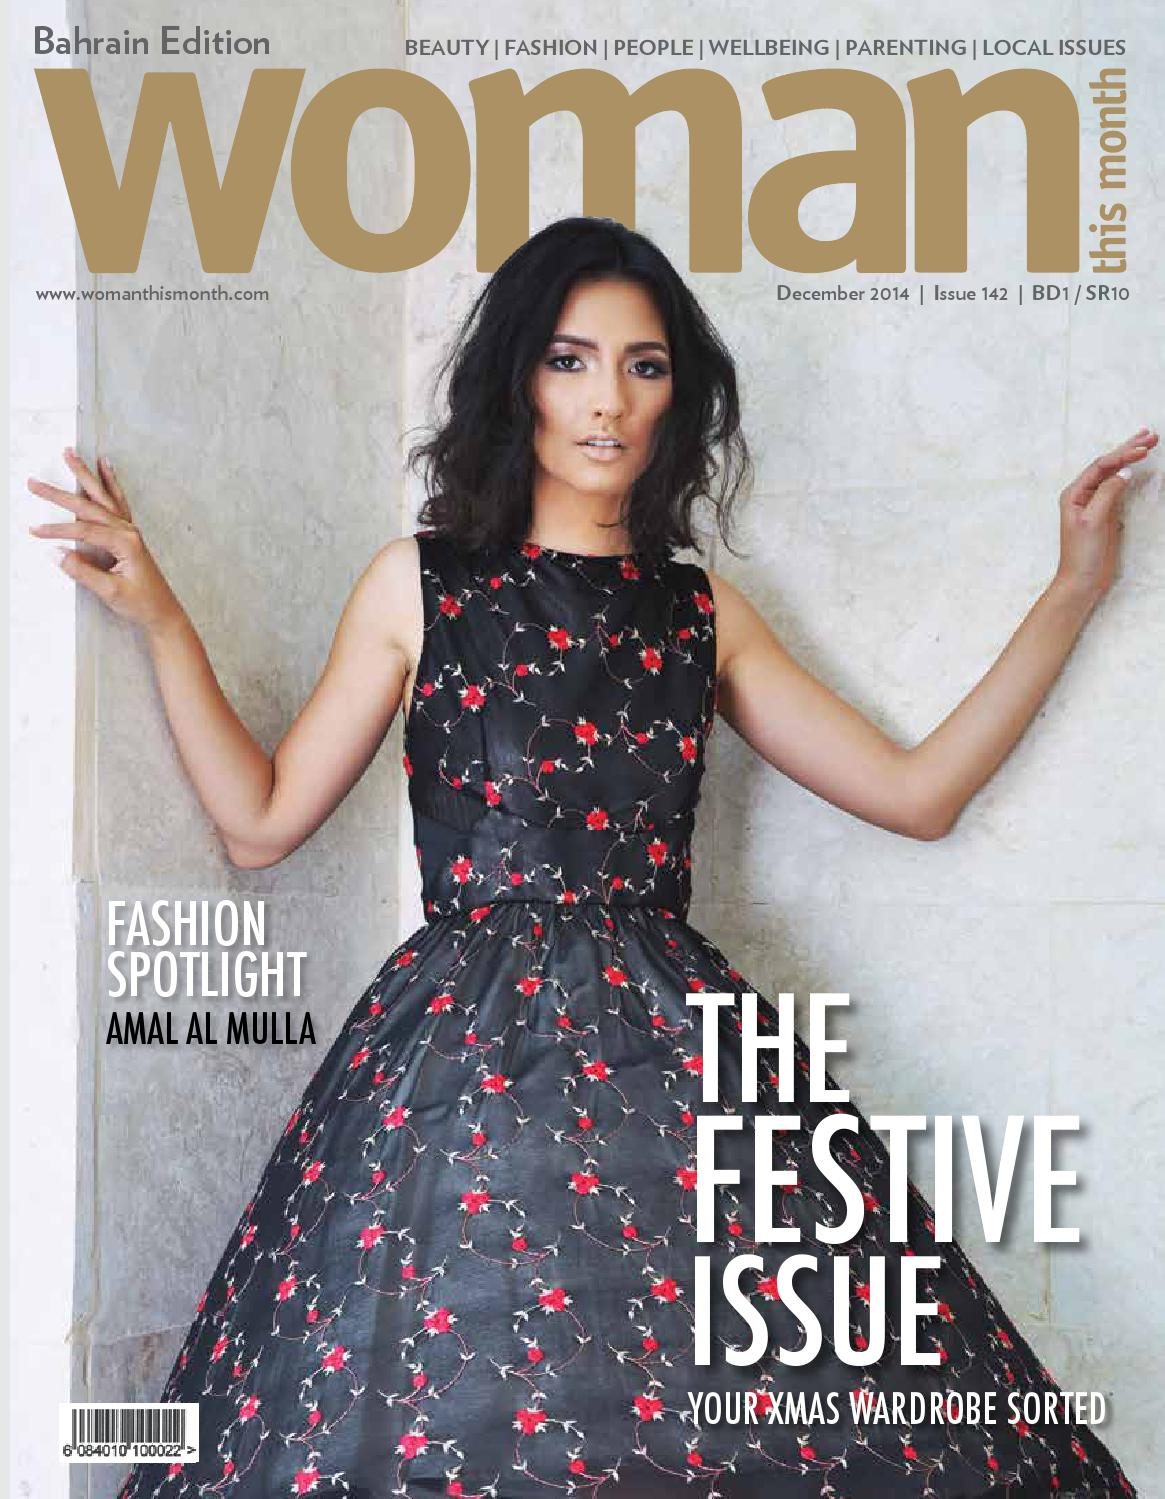 d5ff3f1911 Woman This Month - December 2014 by Red House Marketing - issuu